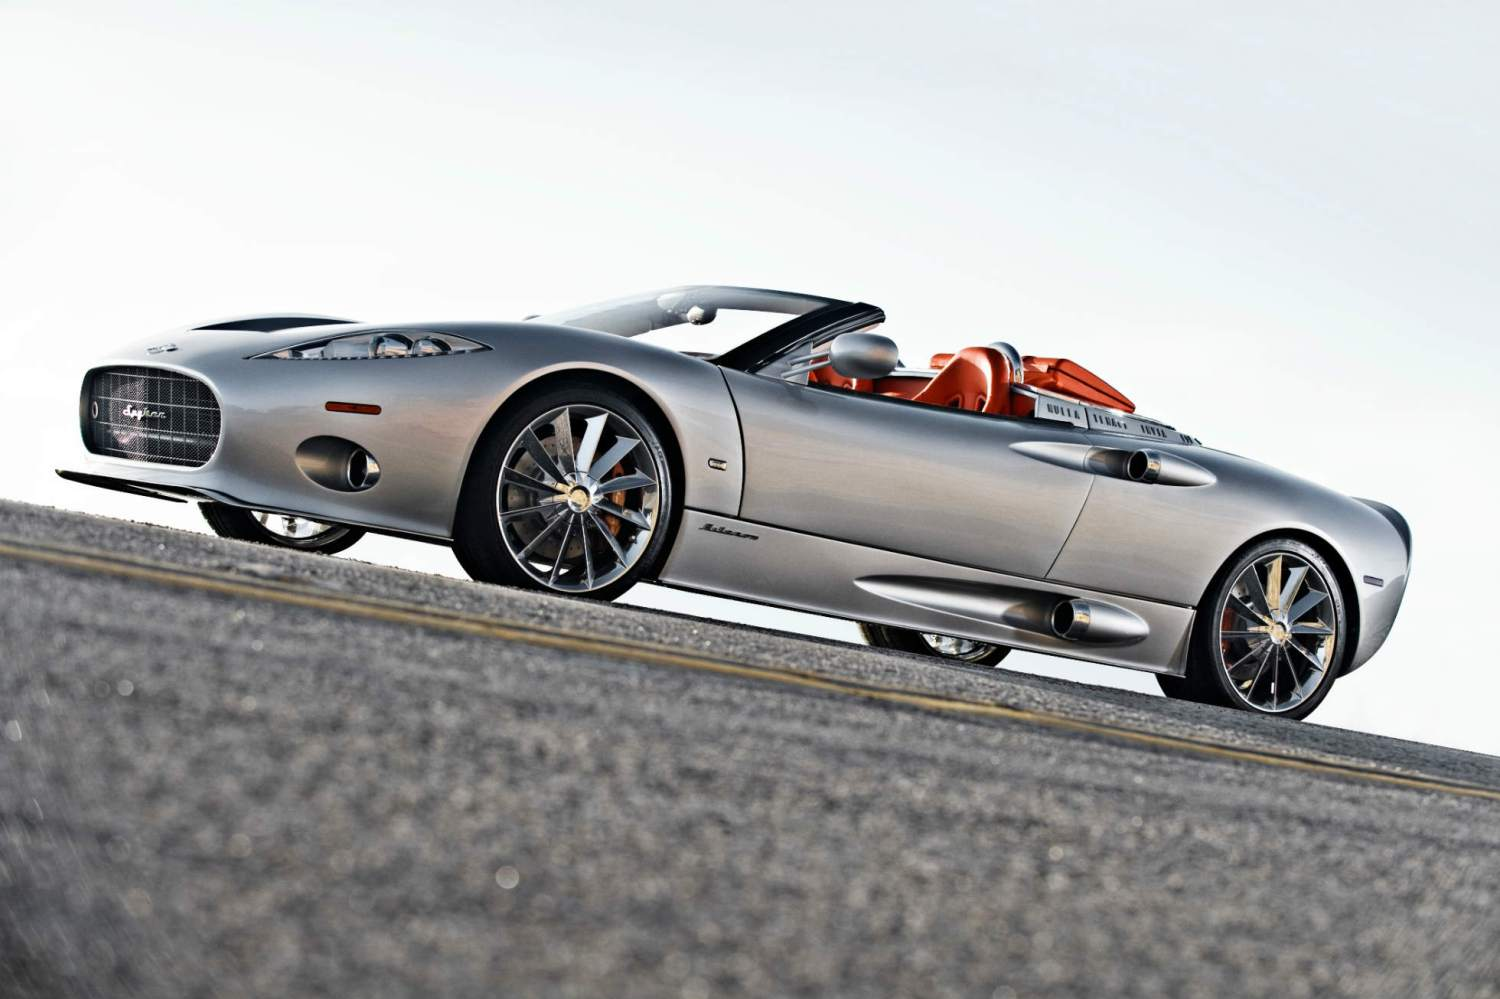 Spyker: back from the dead